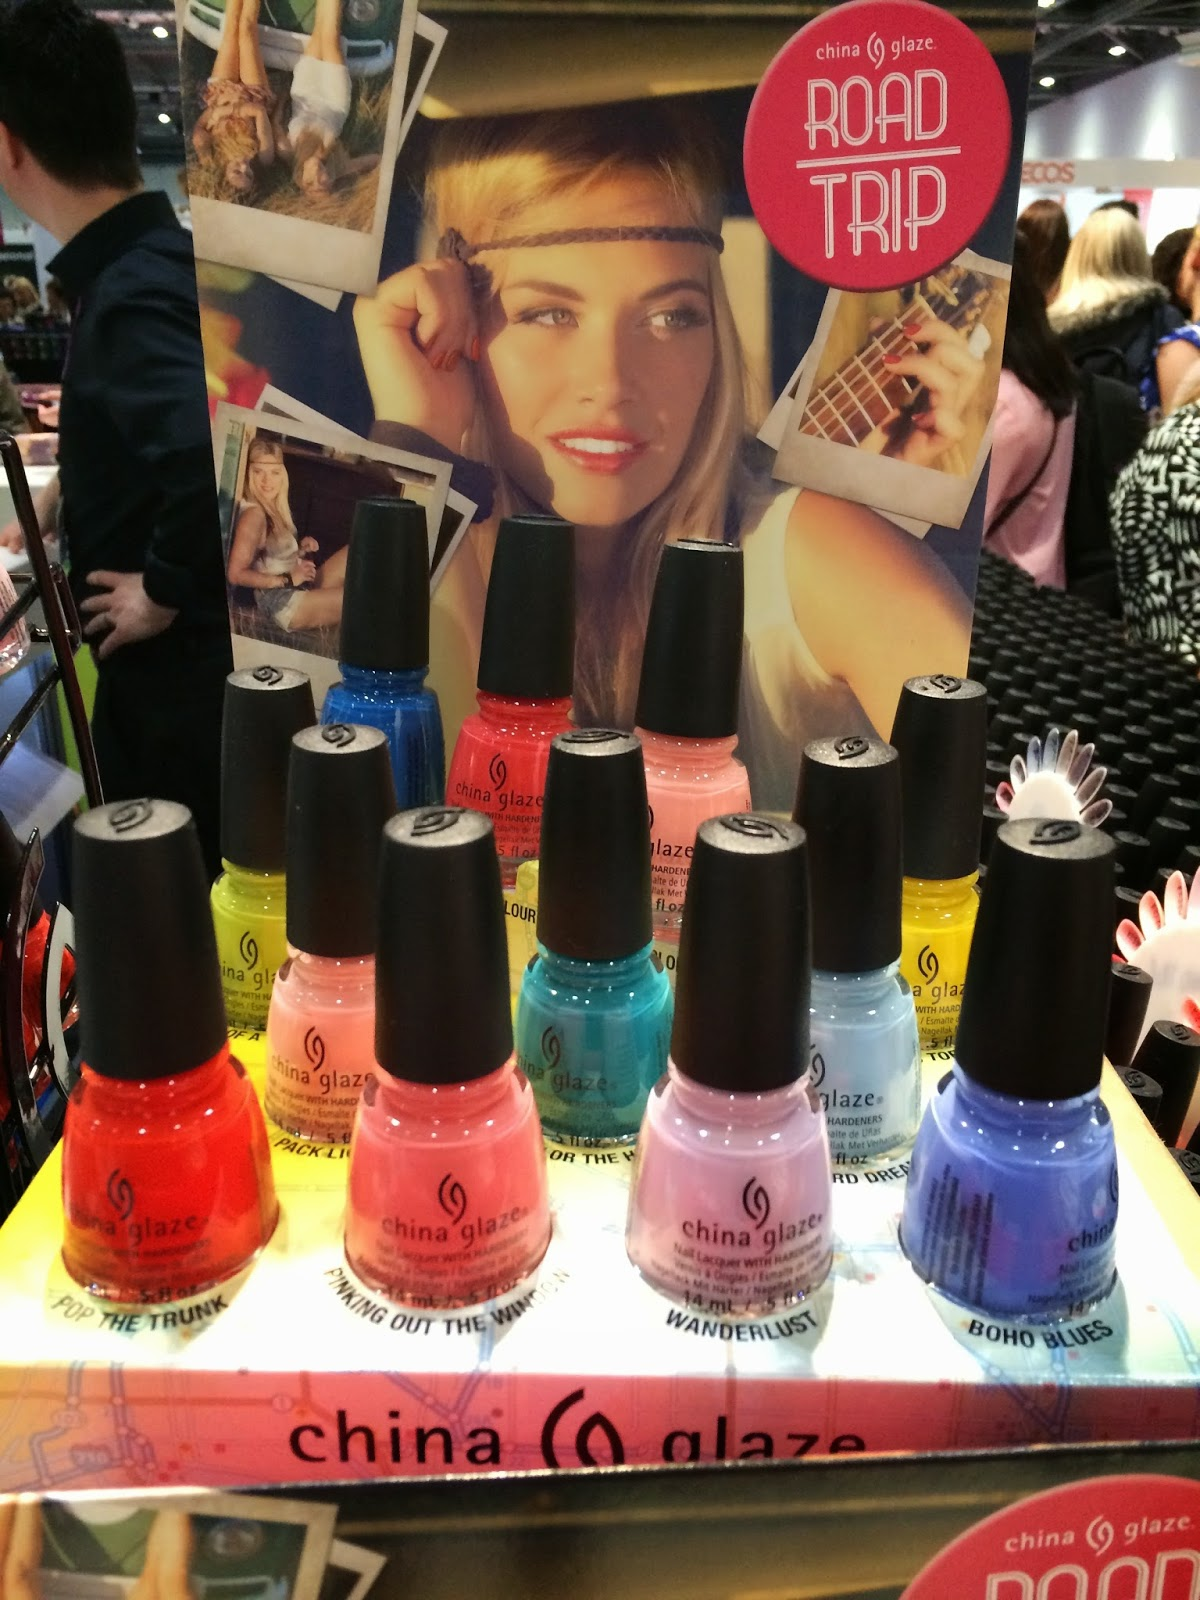 china-glaze-road-trip-collection-2015